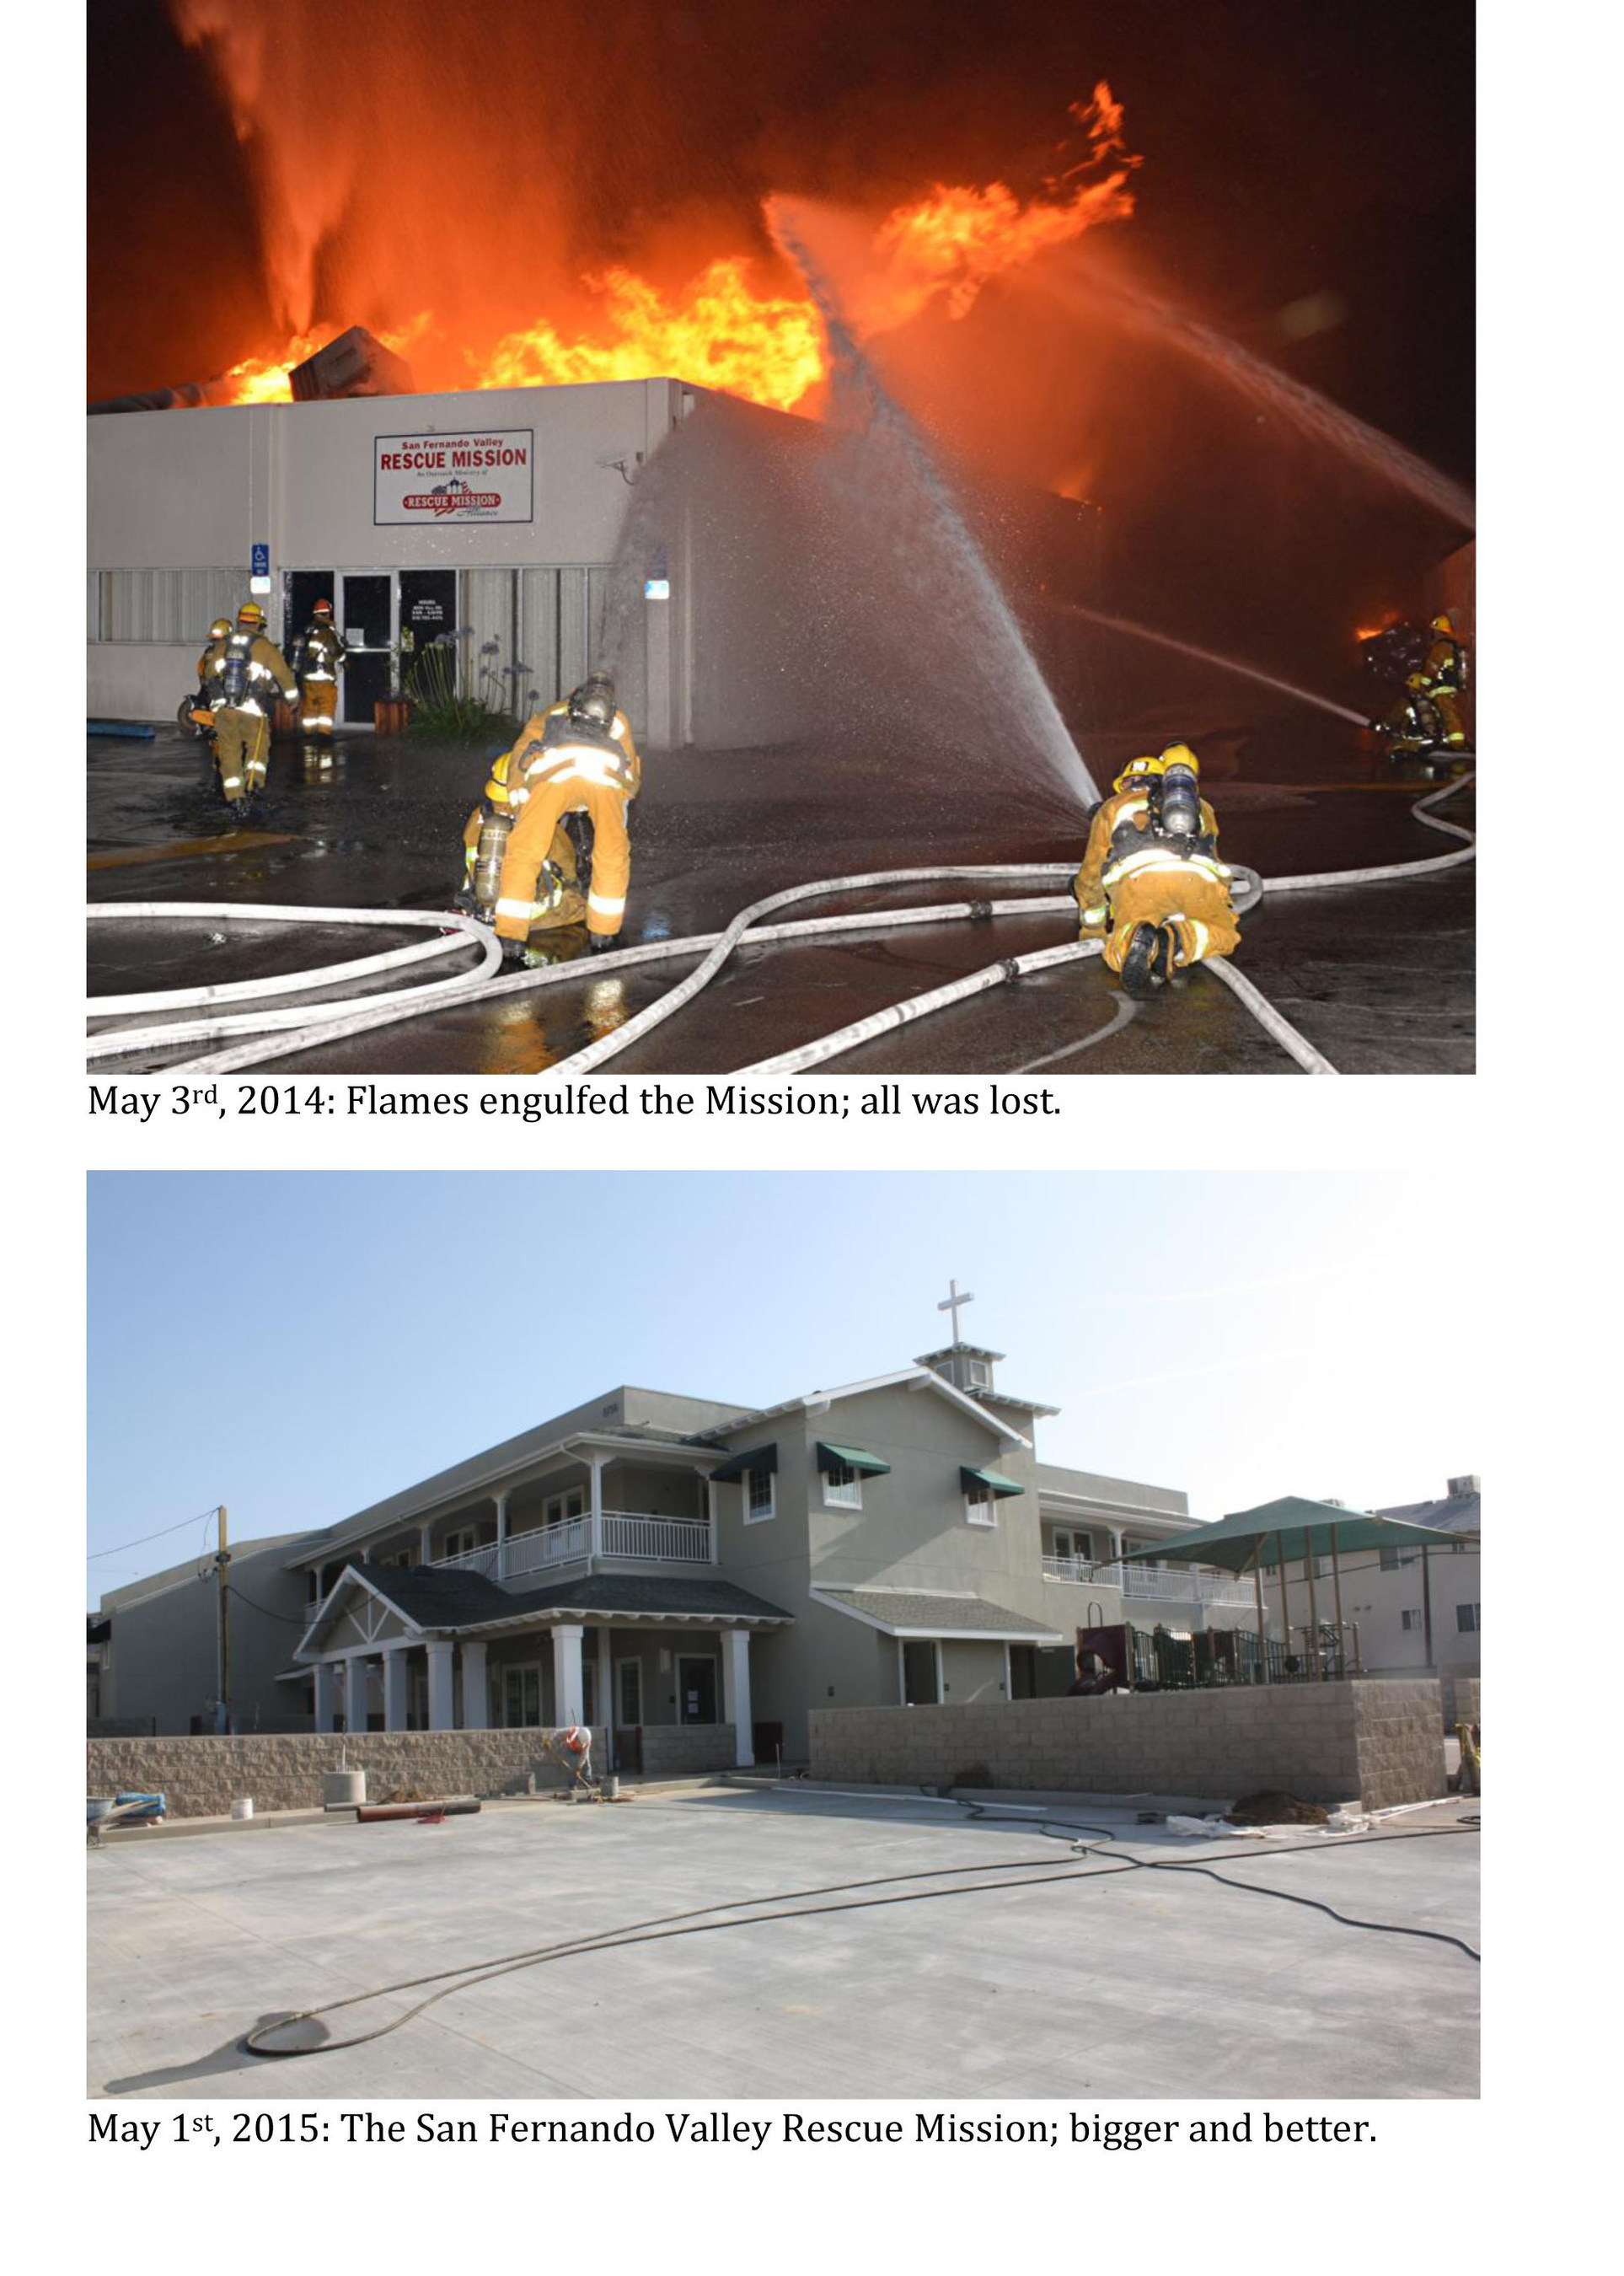 May 3rd, 2014: Flames engulfed the Mission; all was lost. May 1st, 2015: The San Fernando Valley Rescue Mission; bigger and better.